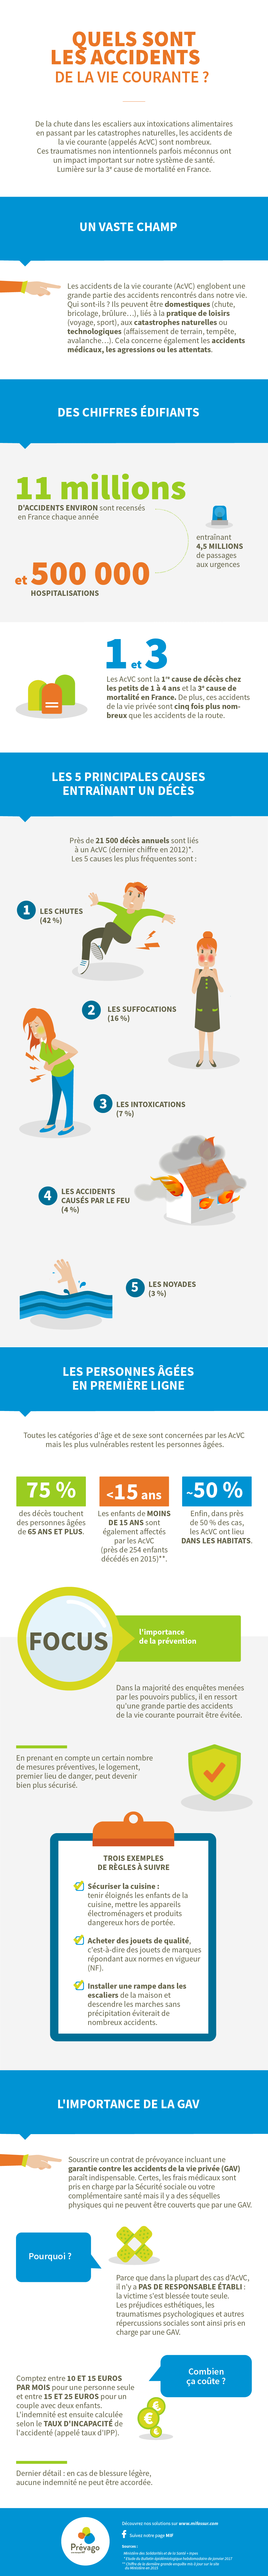 Infographie : Les Accidents de la Vie Courante